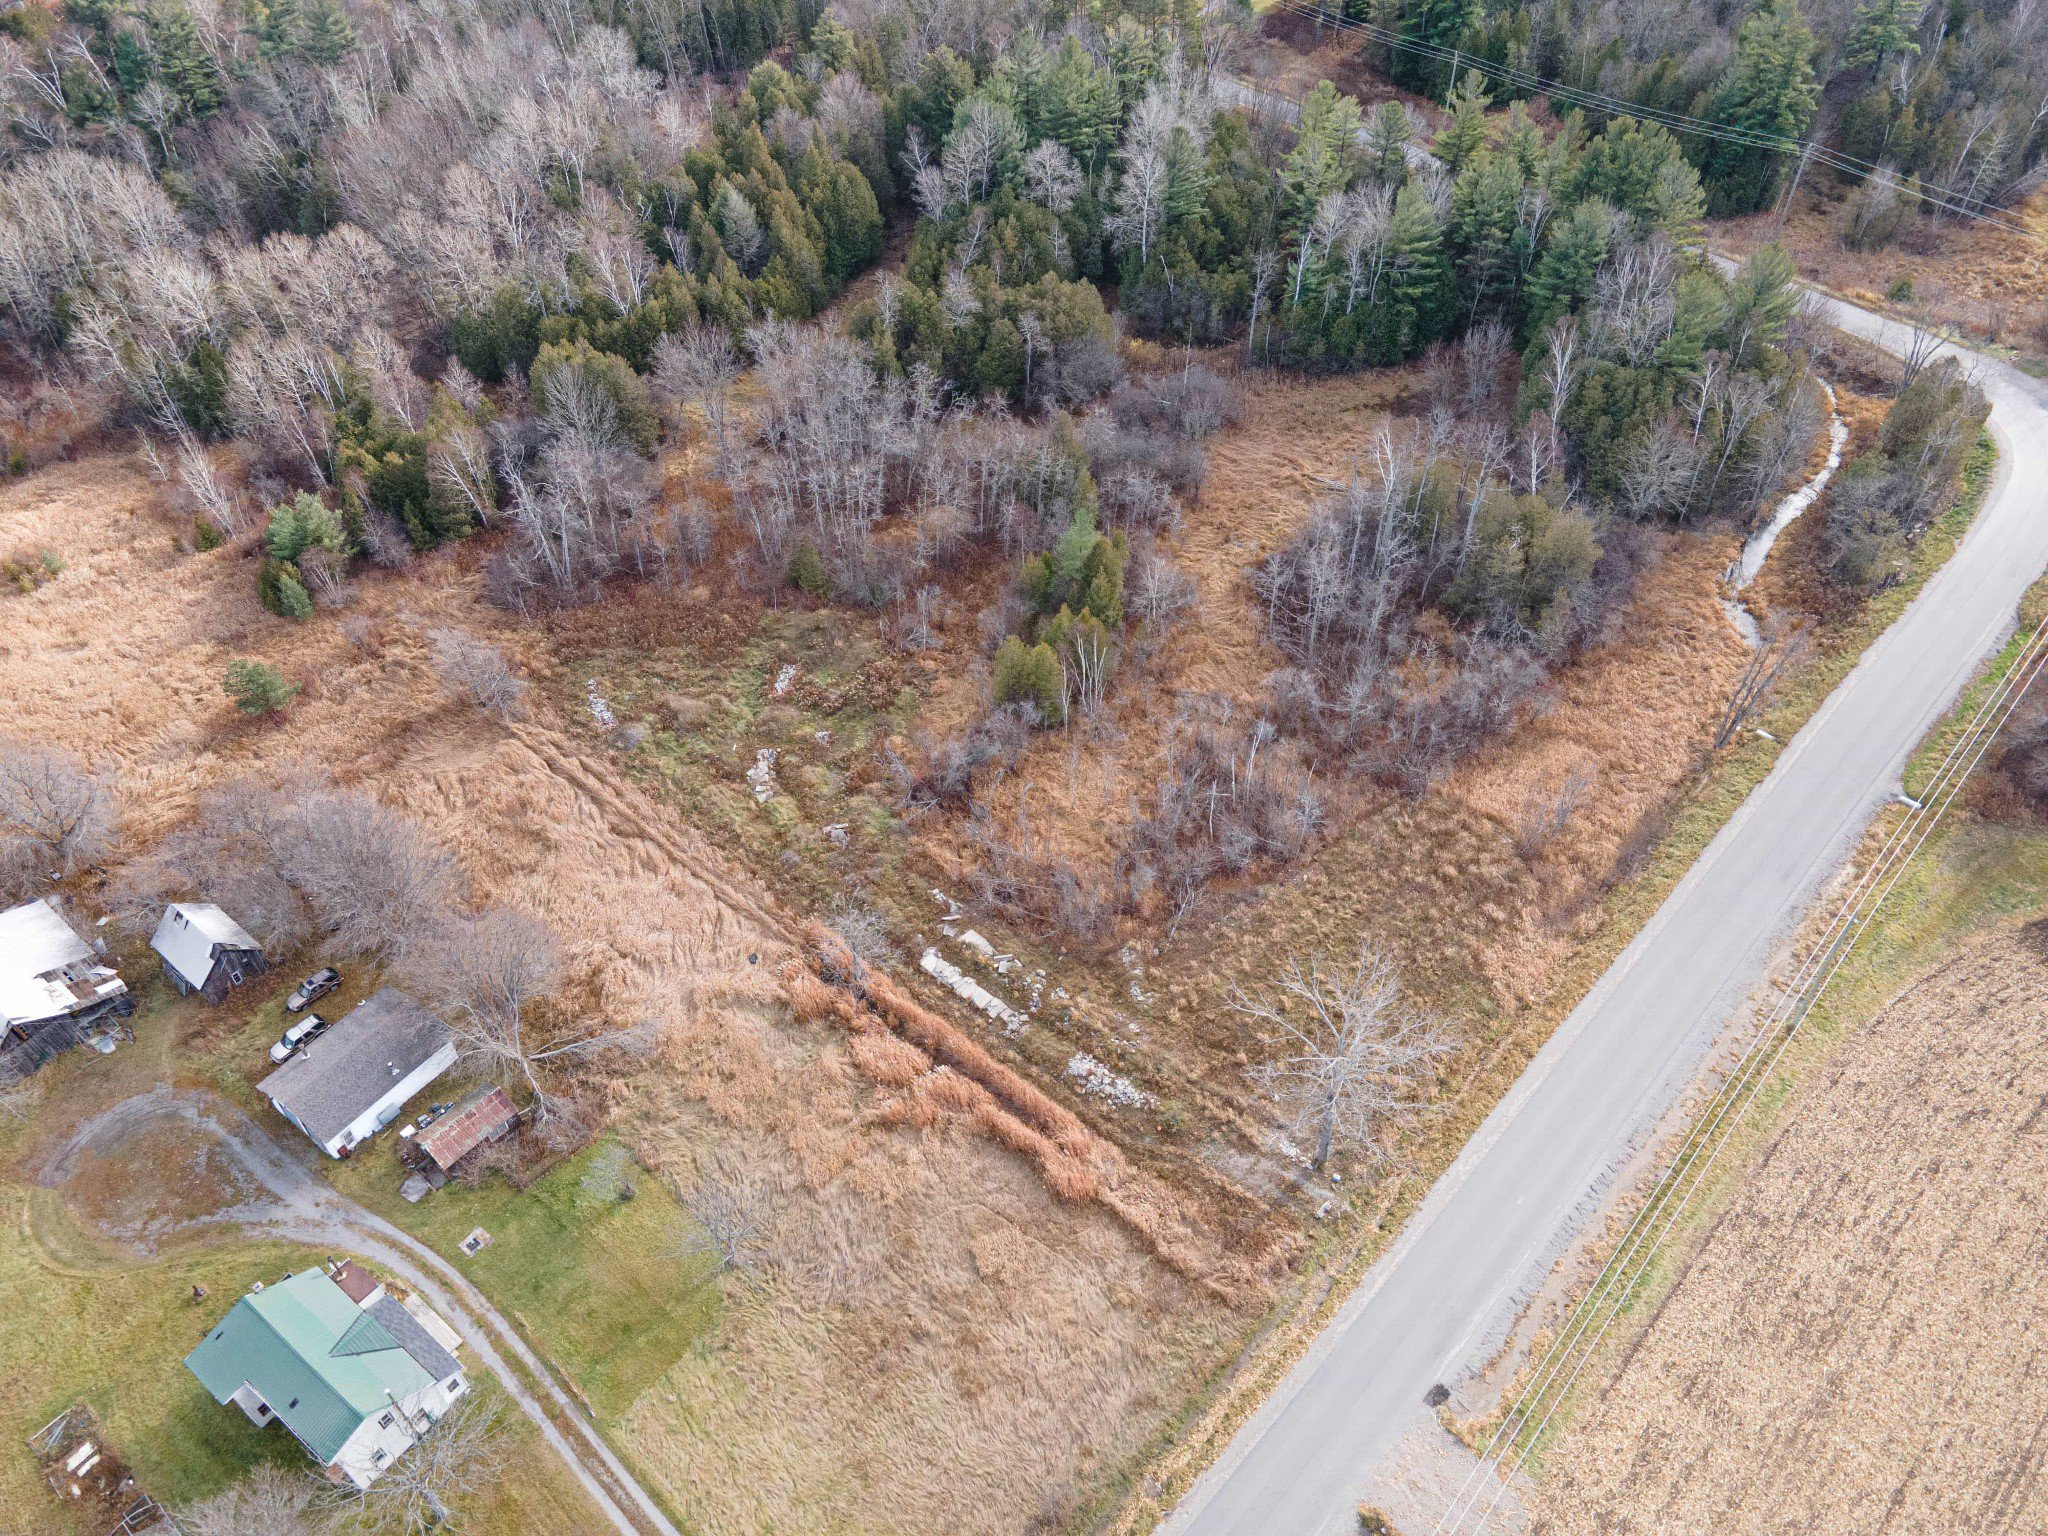 Main Photo:  in Grafton: Land Only for sale : MLS®# 40046274